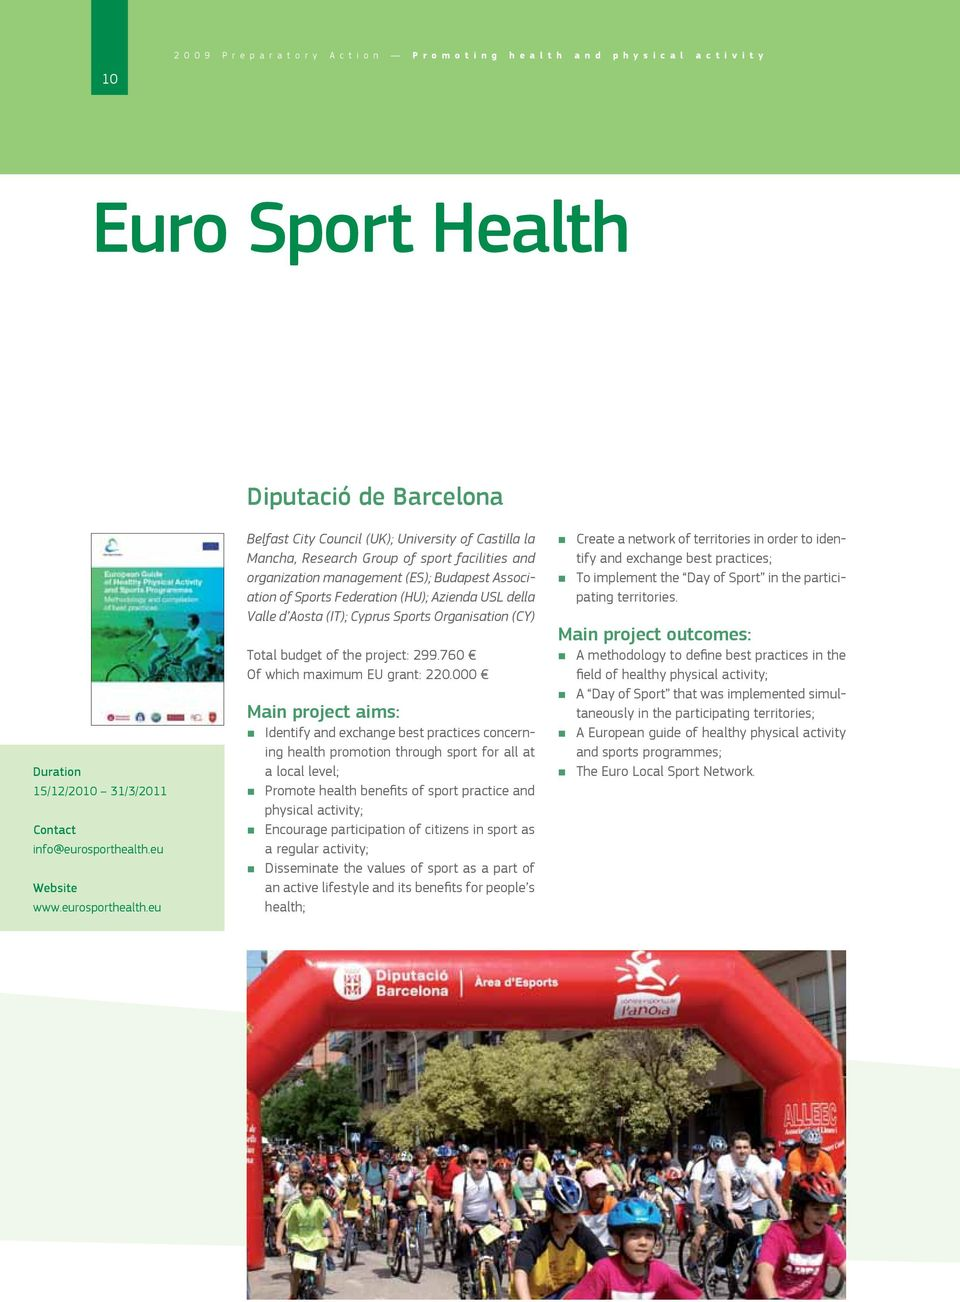 eu Belfast City Council (UK); University of Castilla la Mancha, Research Group of sport facilities and organization management (ES); Budapest Association of Sports Federation (HU); Azienda USL della